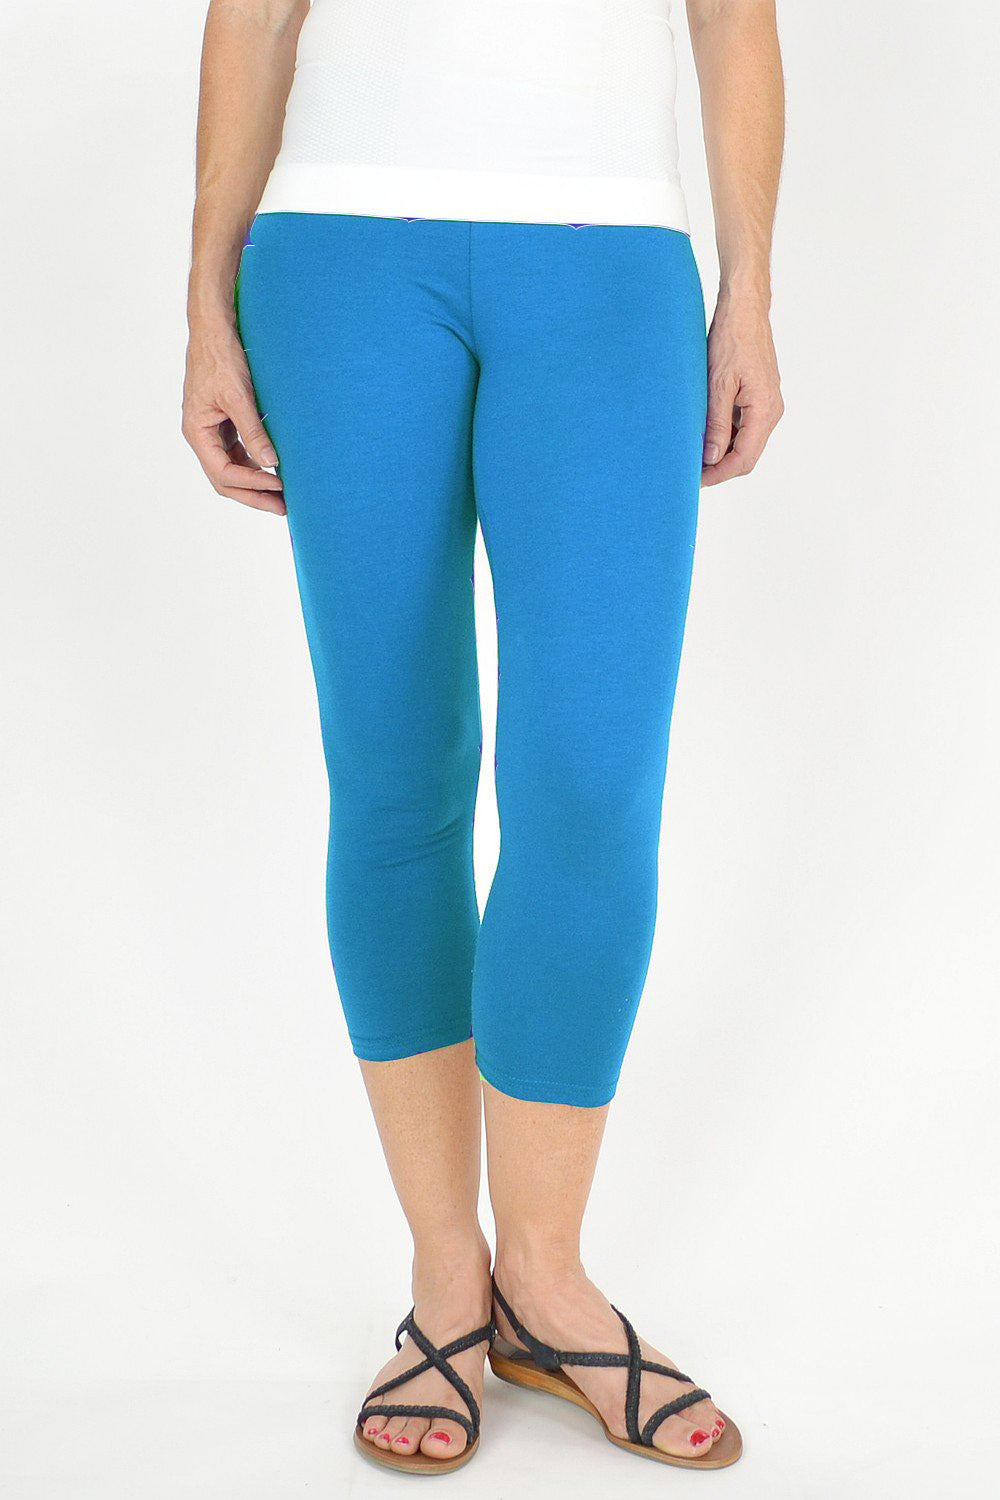 Light Blue Cotton 3/4 Leggings - at I Love Tunics @ www.ilovetunics.com = Number One! Tunics Destination